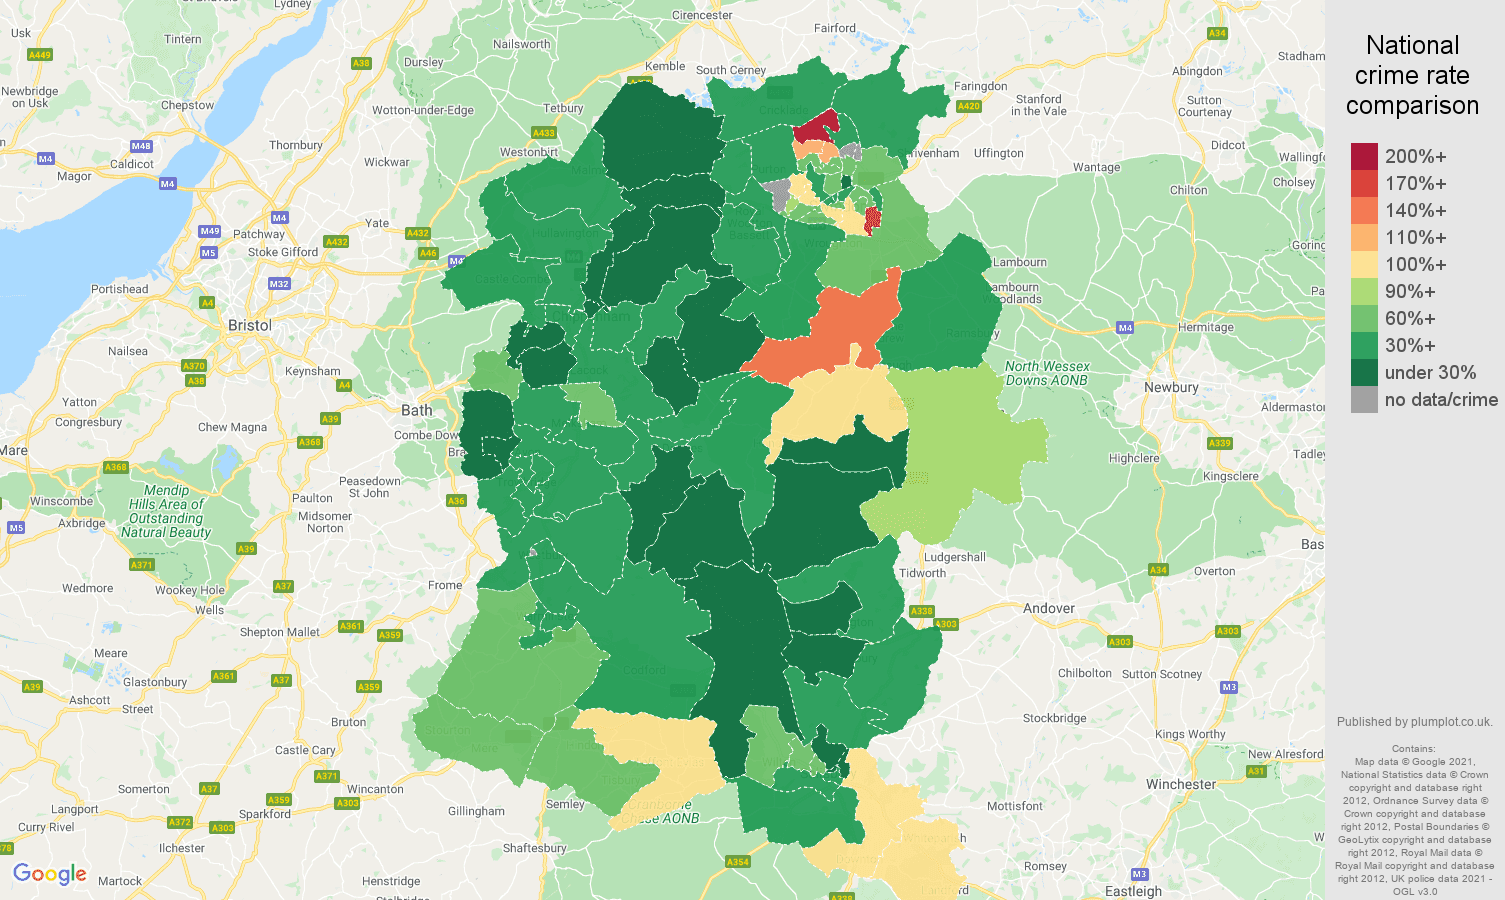 Wiltshire vehicle crime rate comparison map